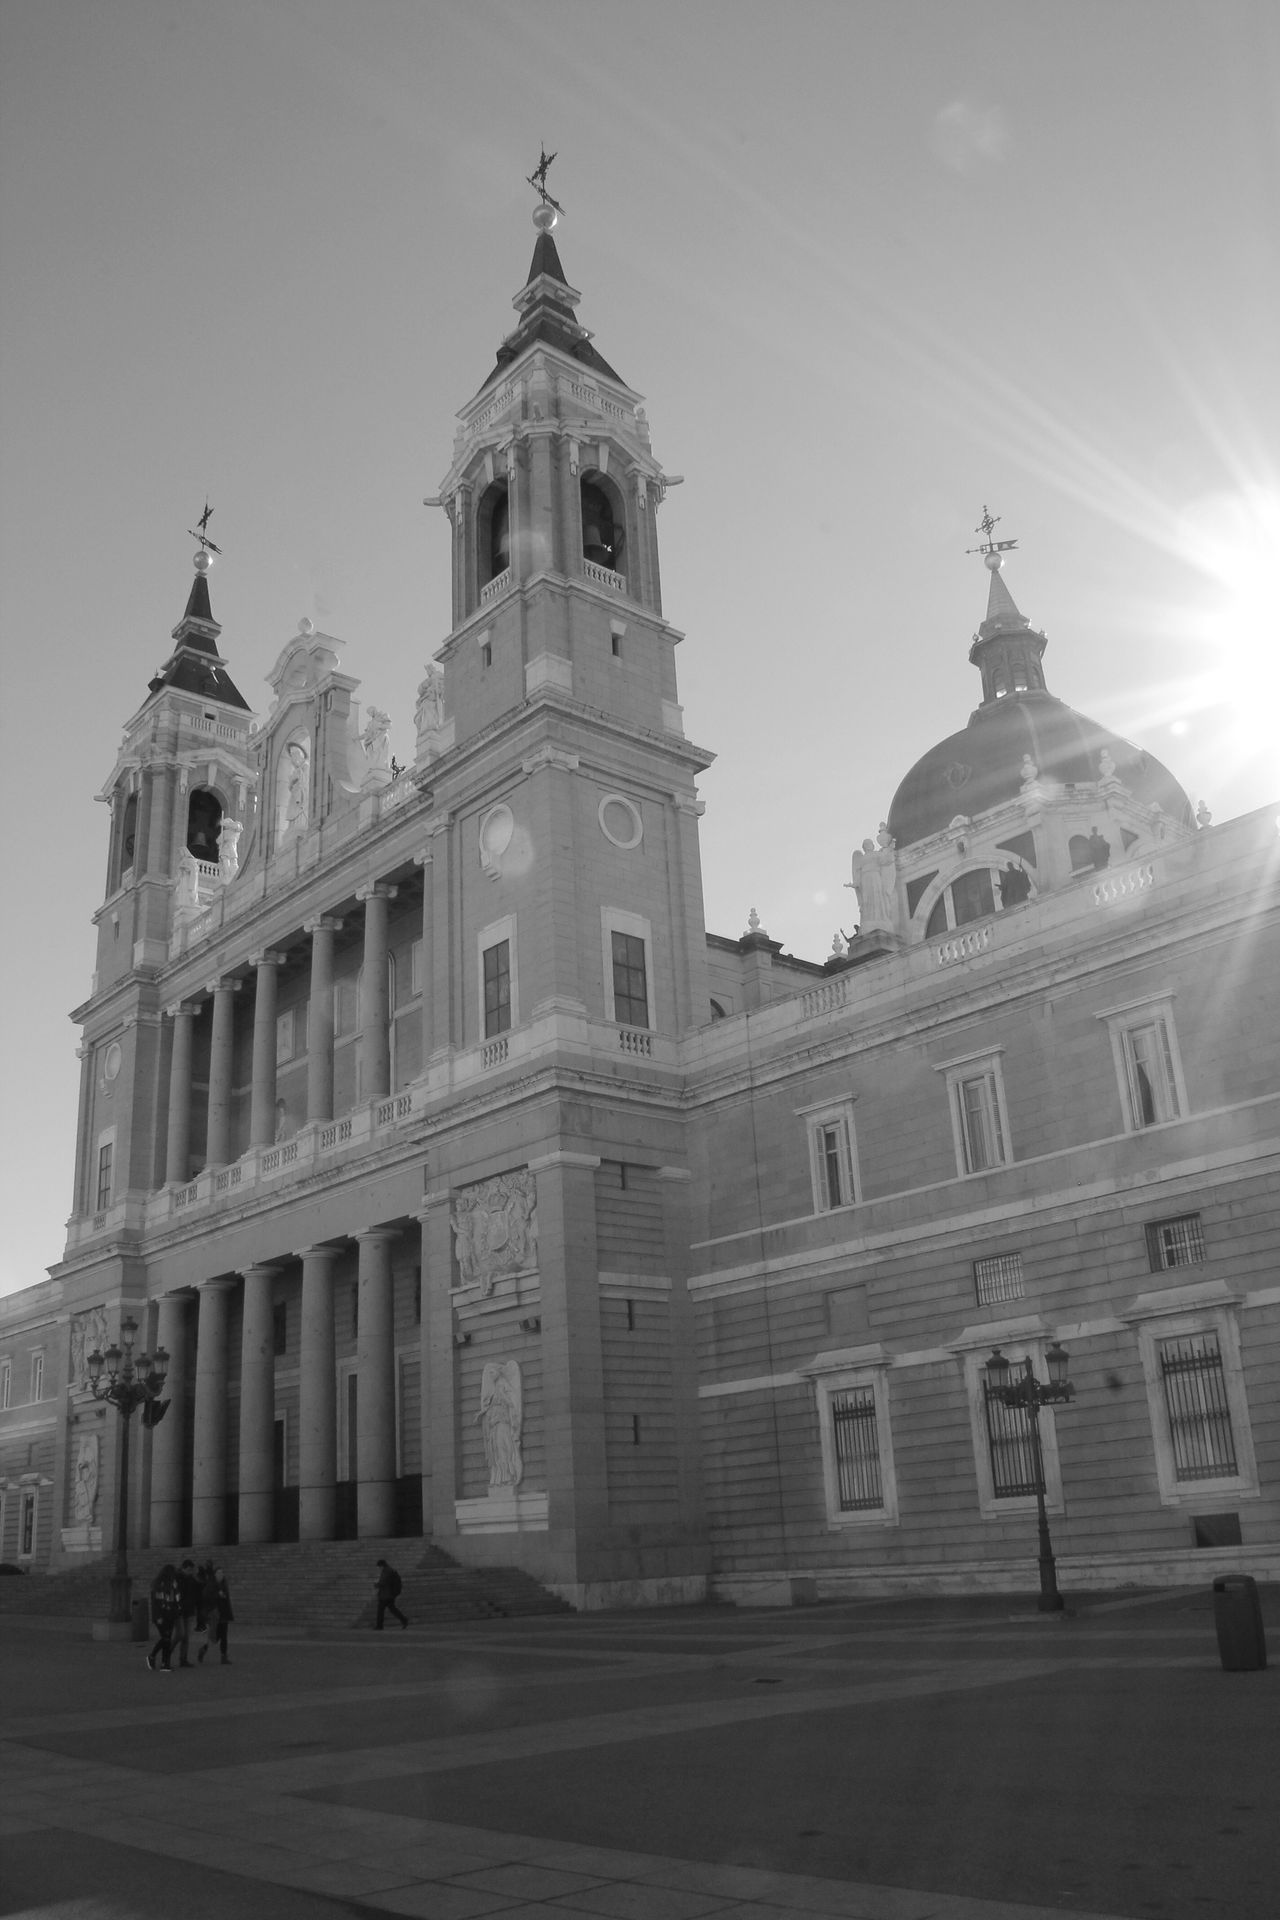 Architecture Building Exterior Built Structure Religion Place Of Worship Spirituality Sky City Outdoors Travel Destinations No People Dome Day Catedral De Almudena Hanging Out Check This Out Enjoying Life Taking Photos EyeEm Best Shots Streetphotography Blackandwhite Architecture Church Sunbeam Sunlight